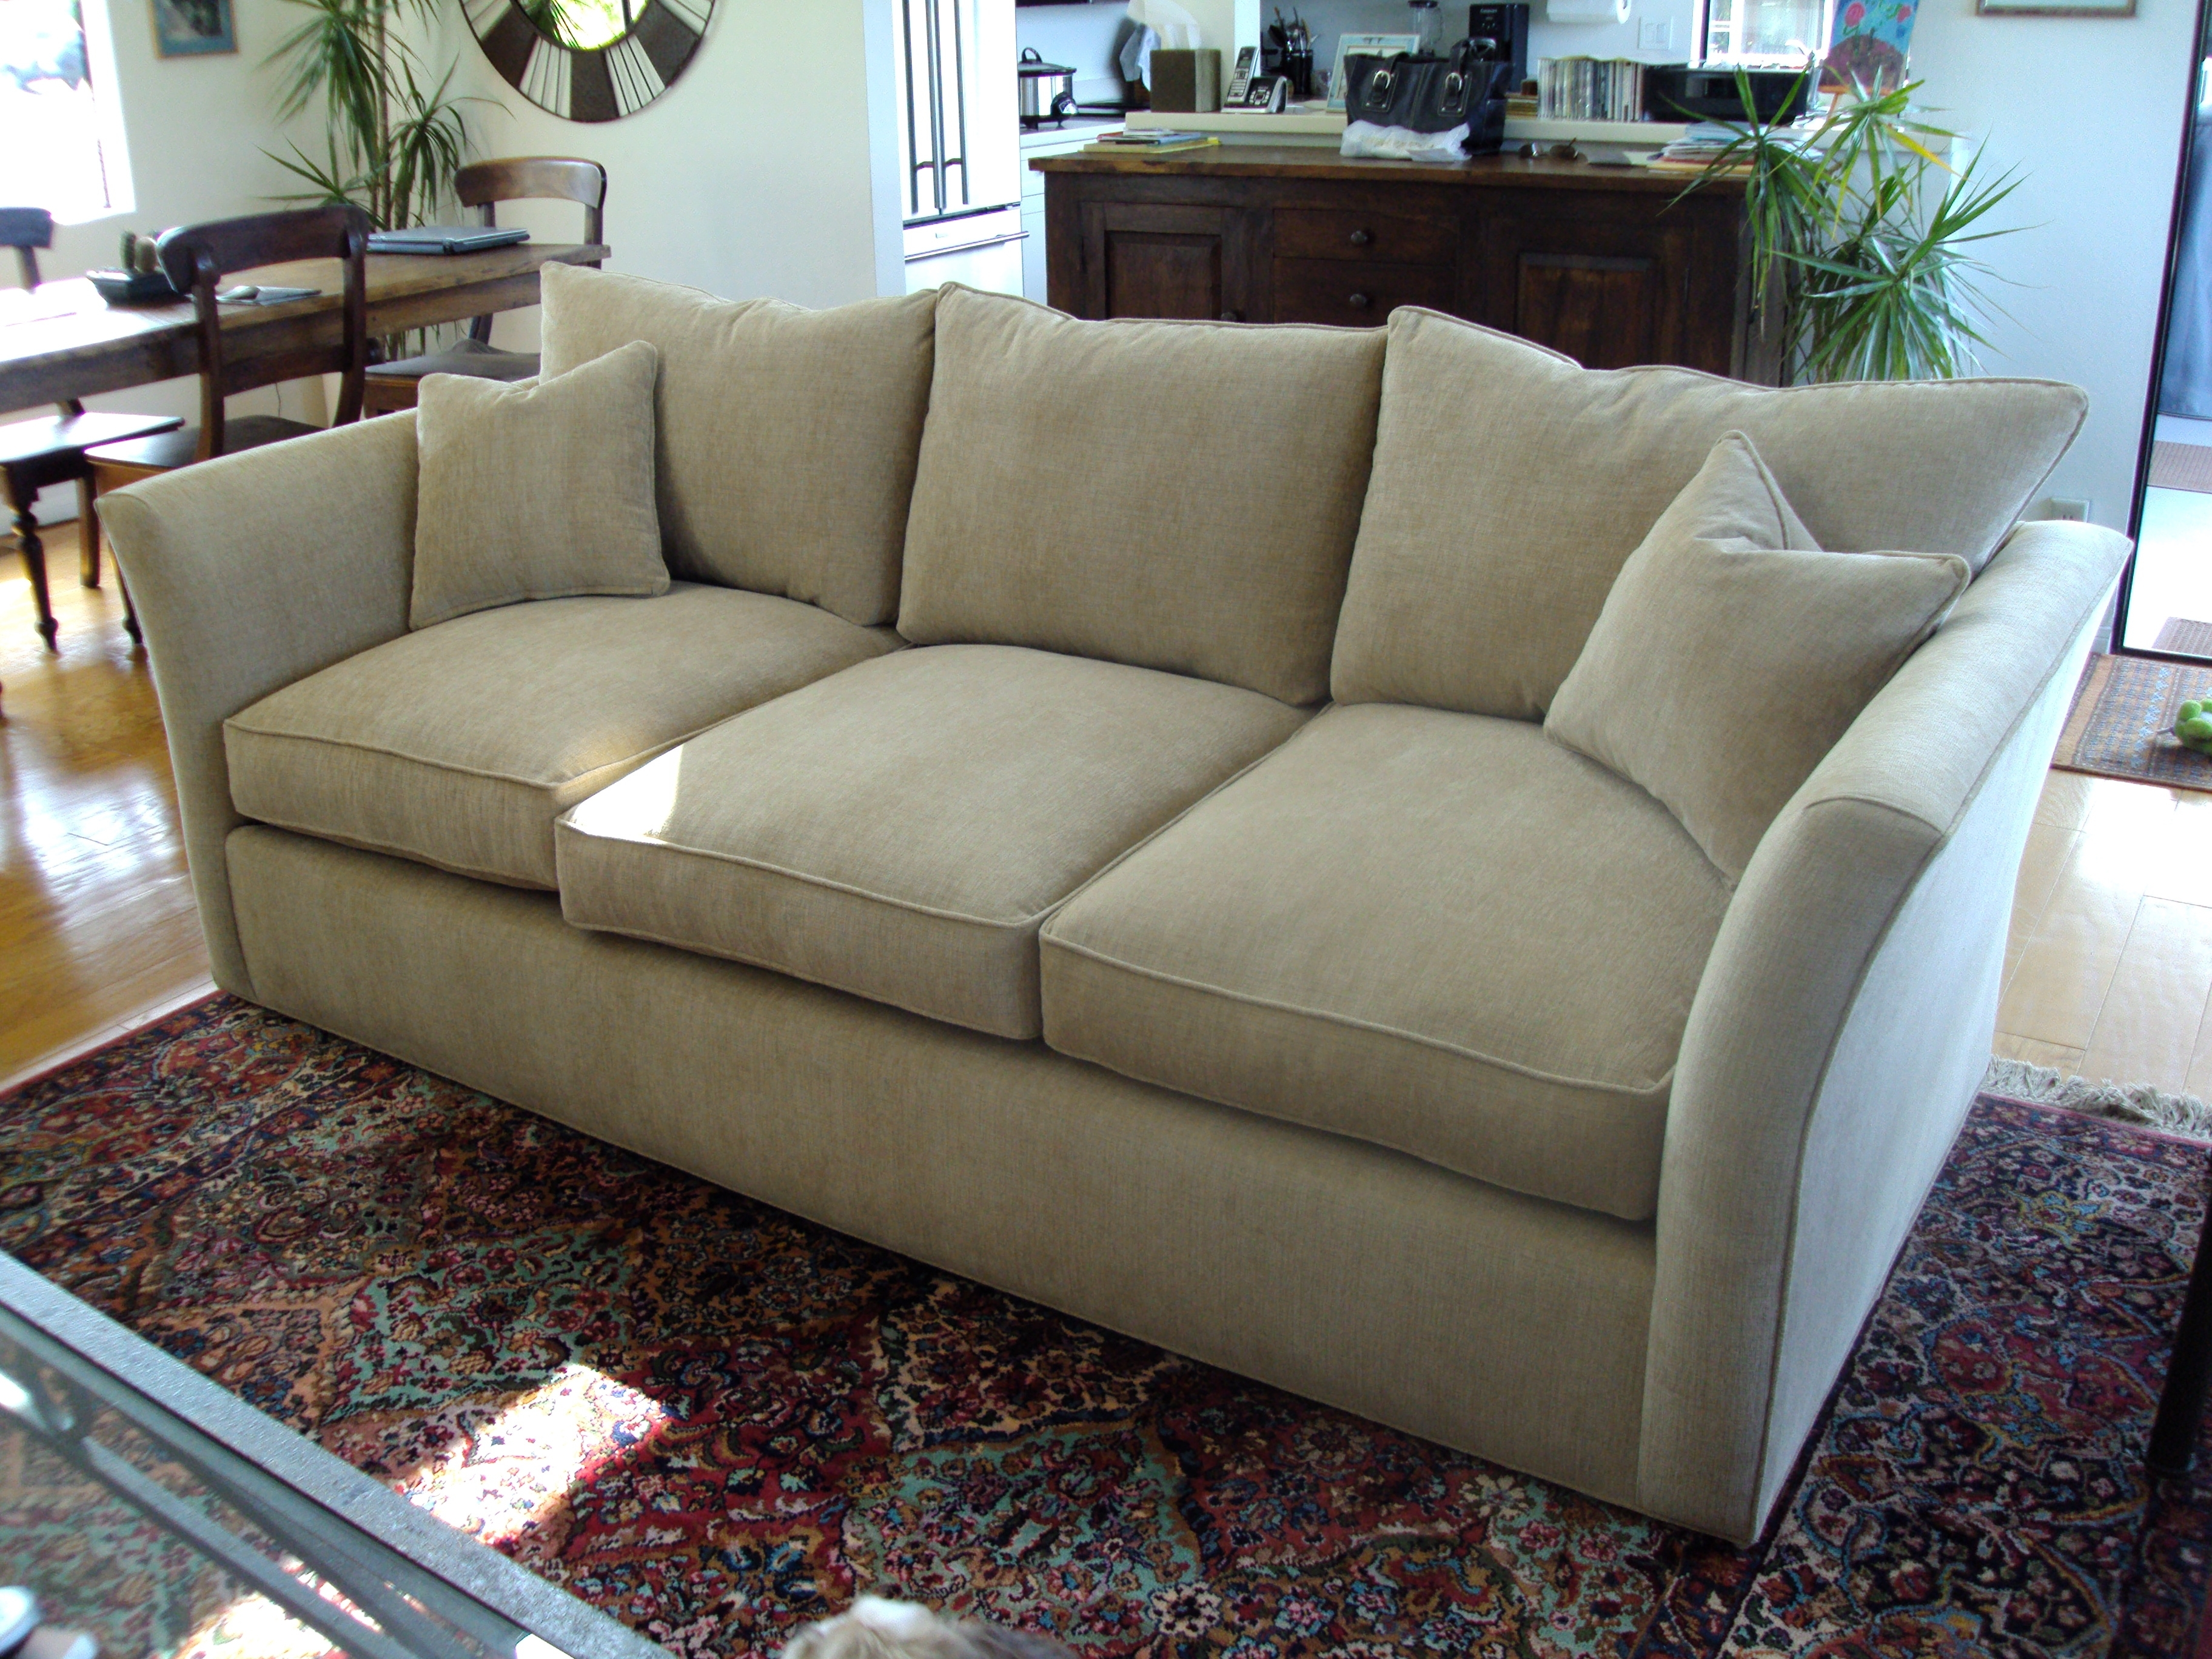 Attractive Reupholstering A Sectional Sofa 67 For Sectional Sofas With Sectional Sofas In North Carolina (View 6 of 10)